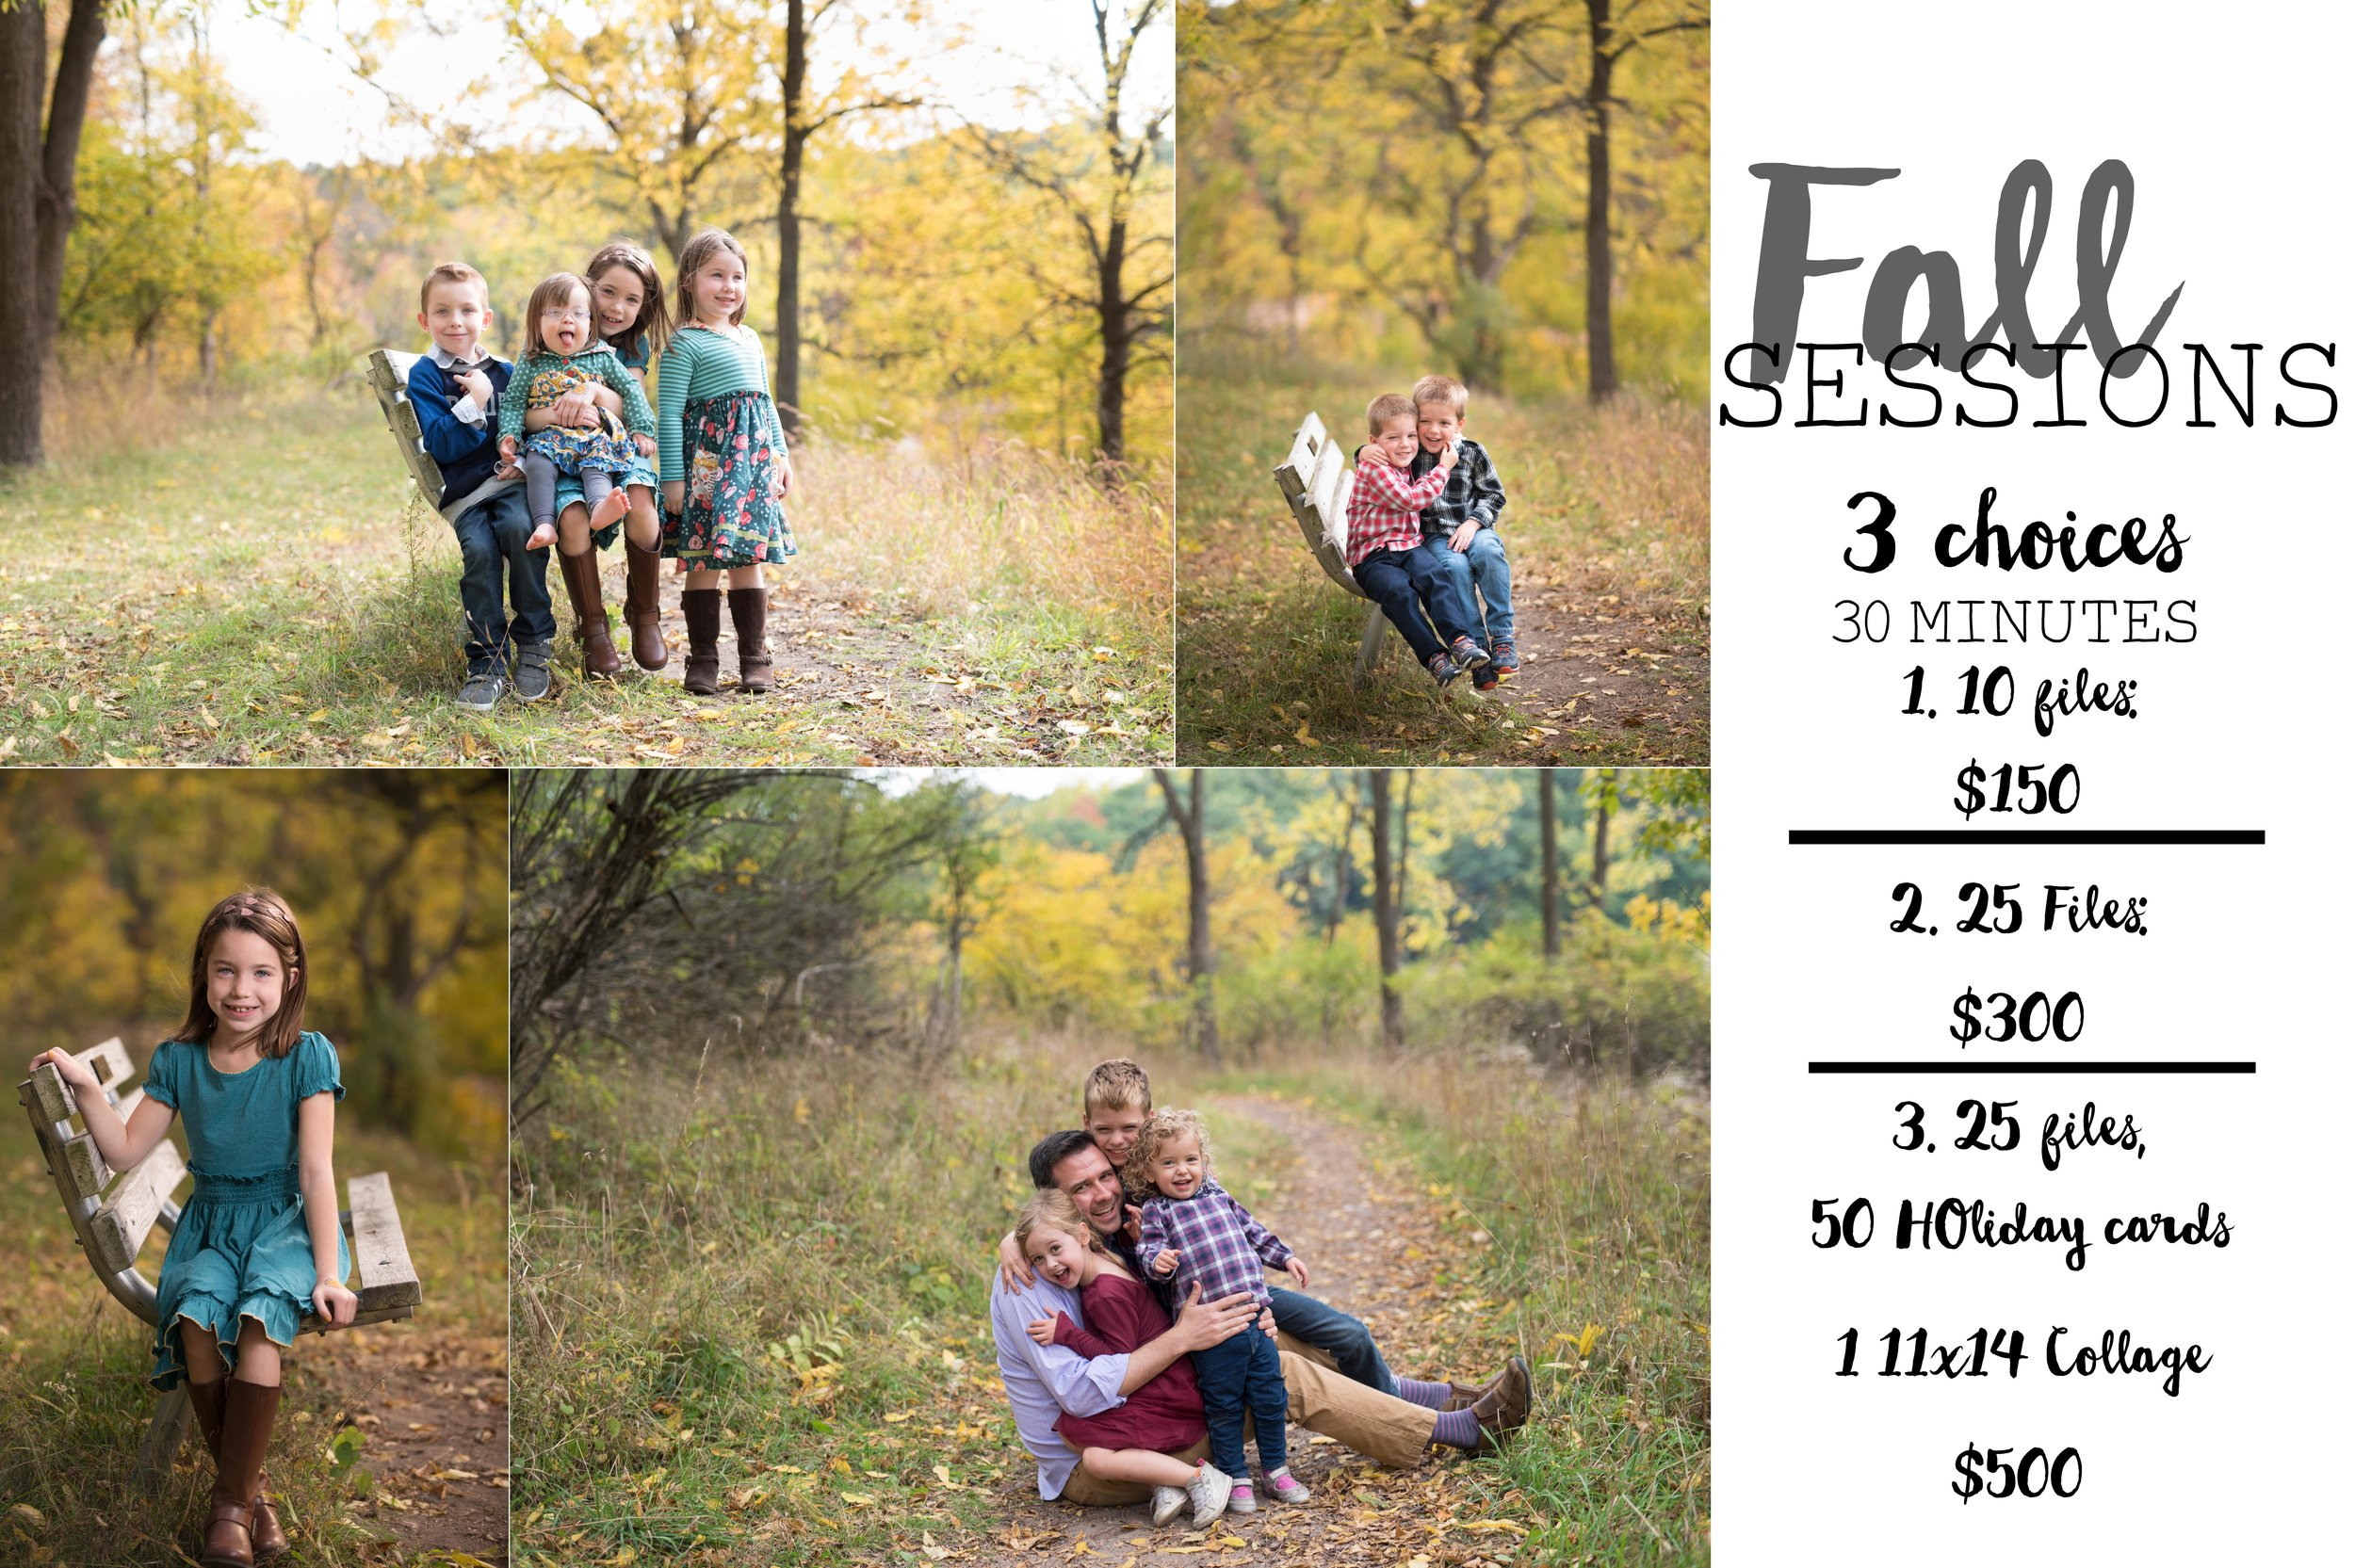 Fall sessions with north glow.jpg